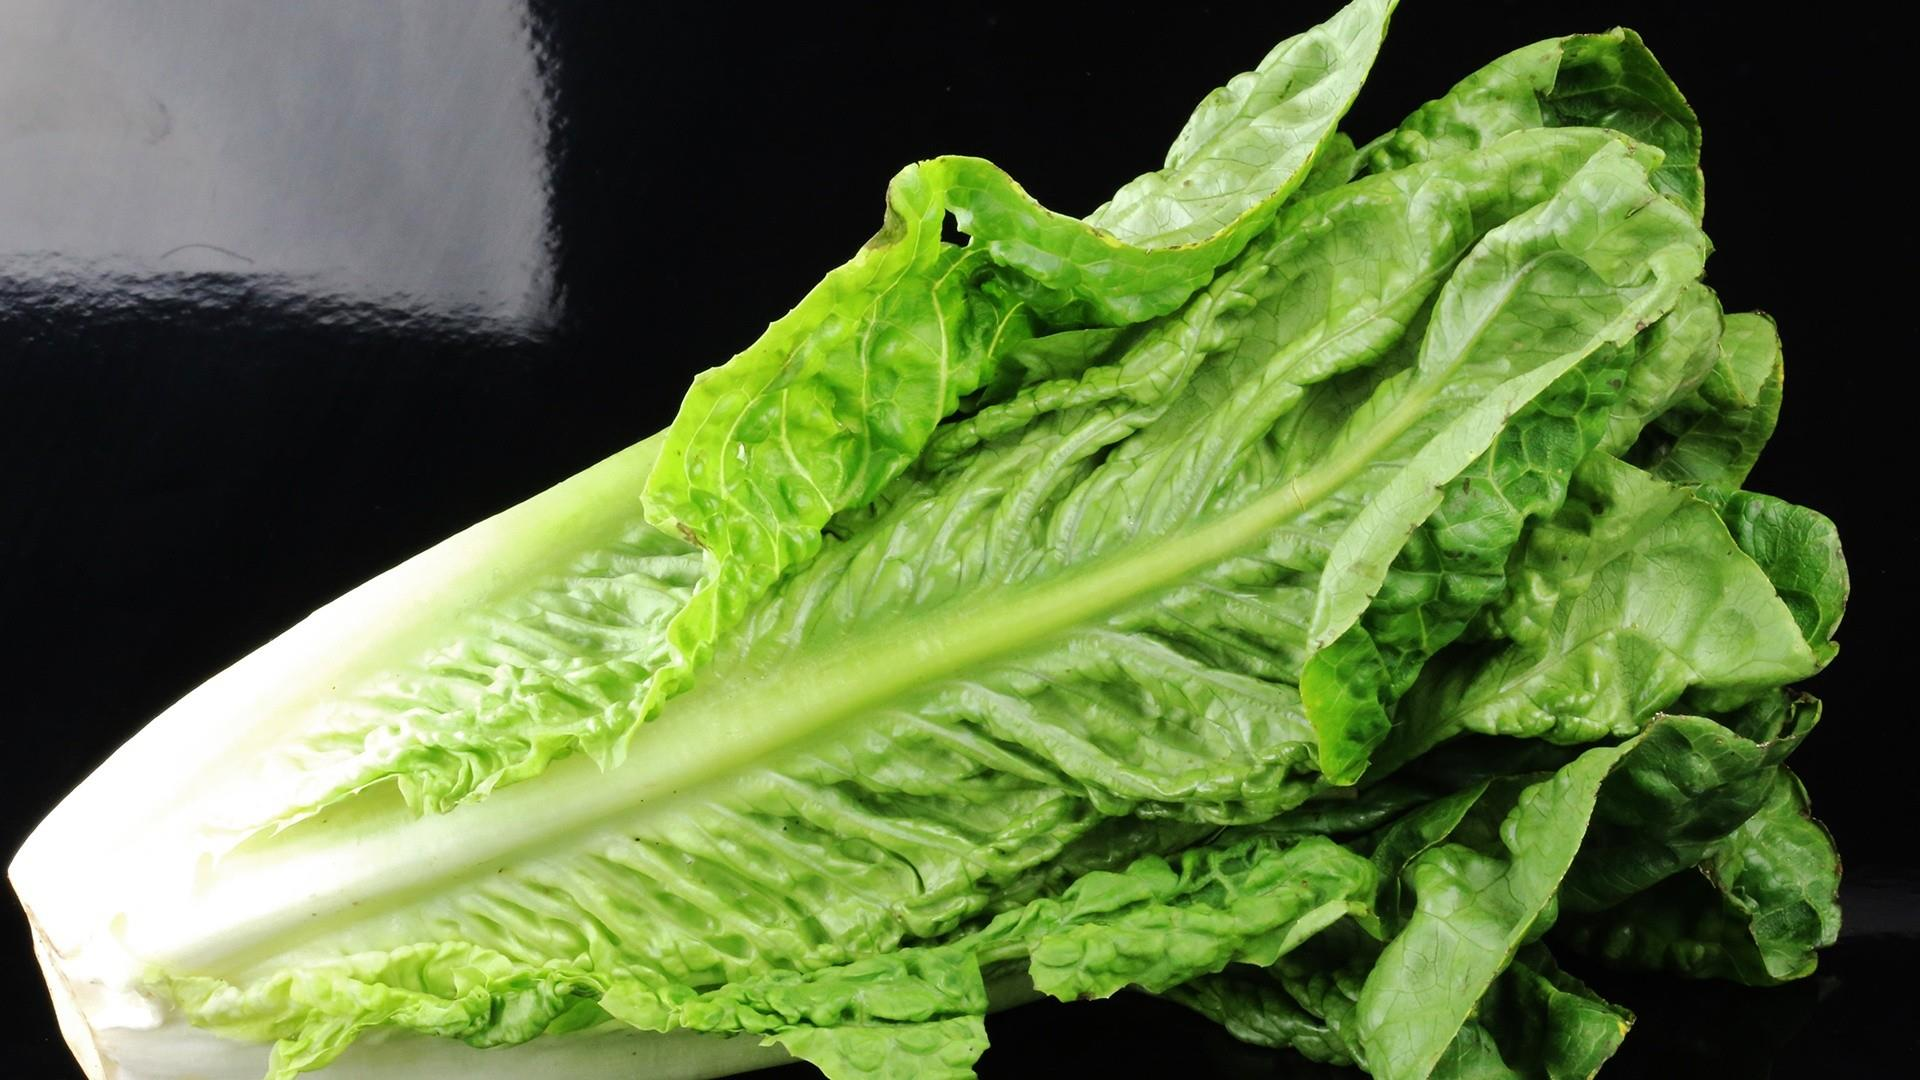 Romaine lettuce recall: 102 people in 23 states sickened in latest E. coli outbreak